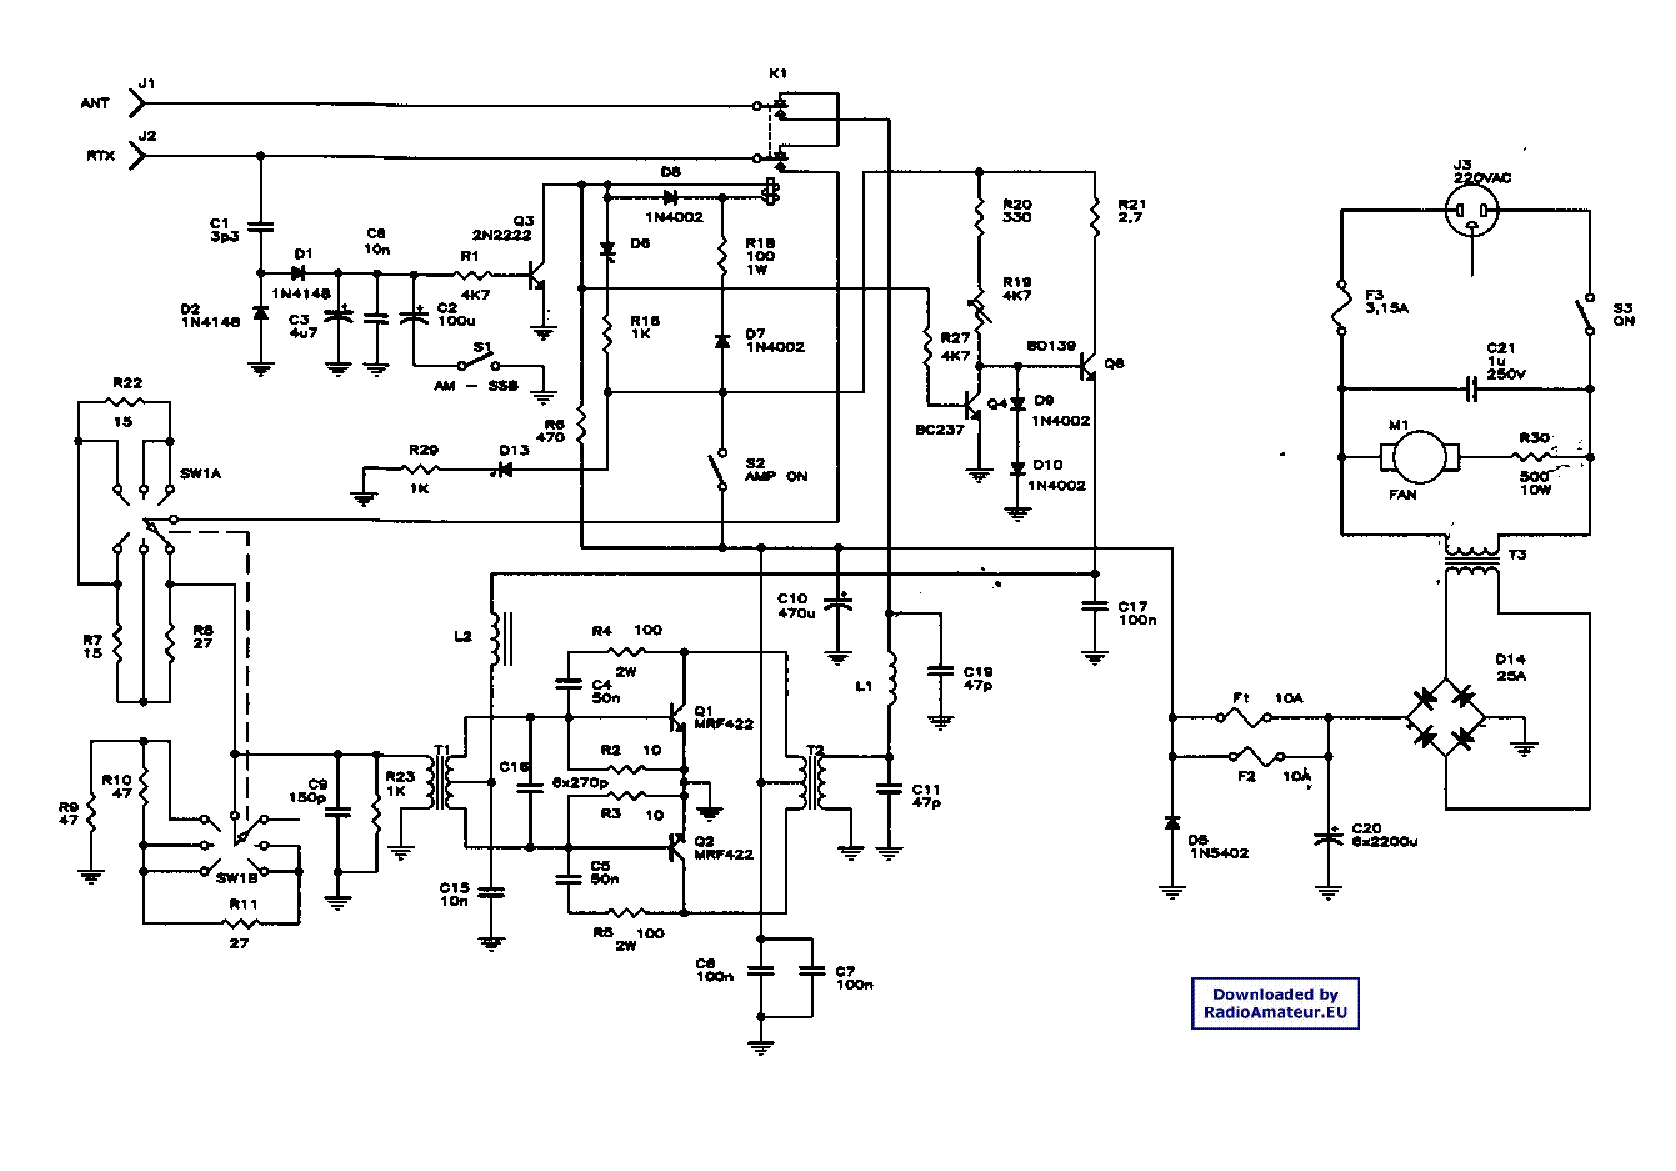 wiring diagram generator avr wiring discover your wiring diagram electrical schematics program